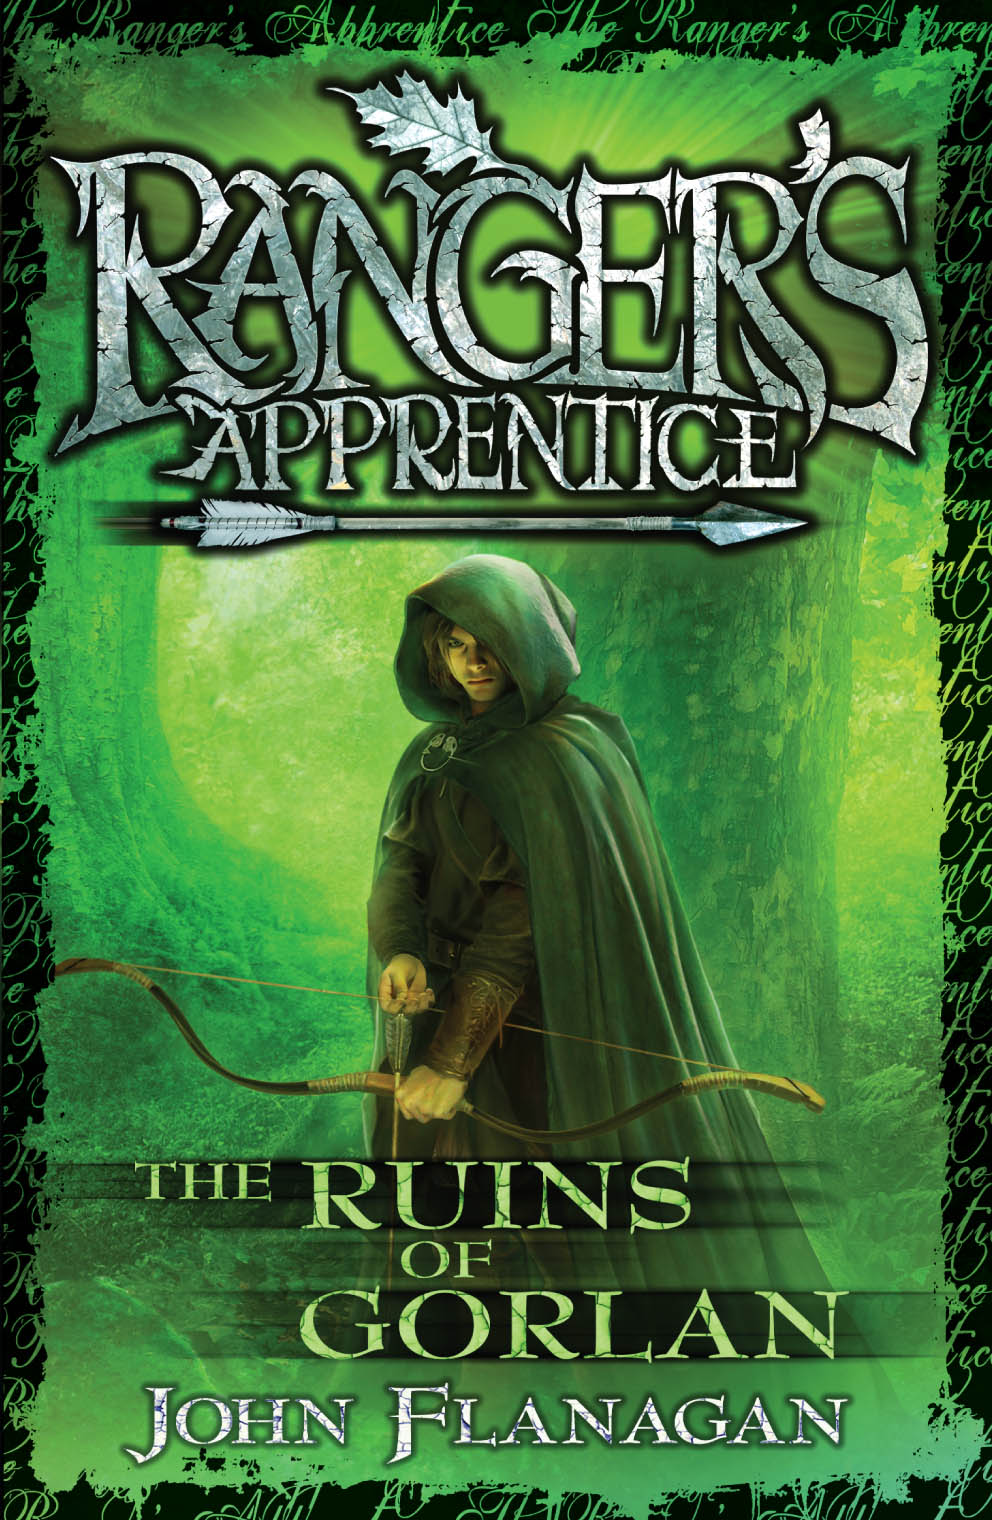 Book Cover Series S : Which of the new ranger s apprentice covers is your favourite